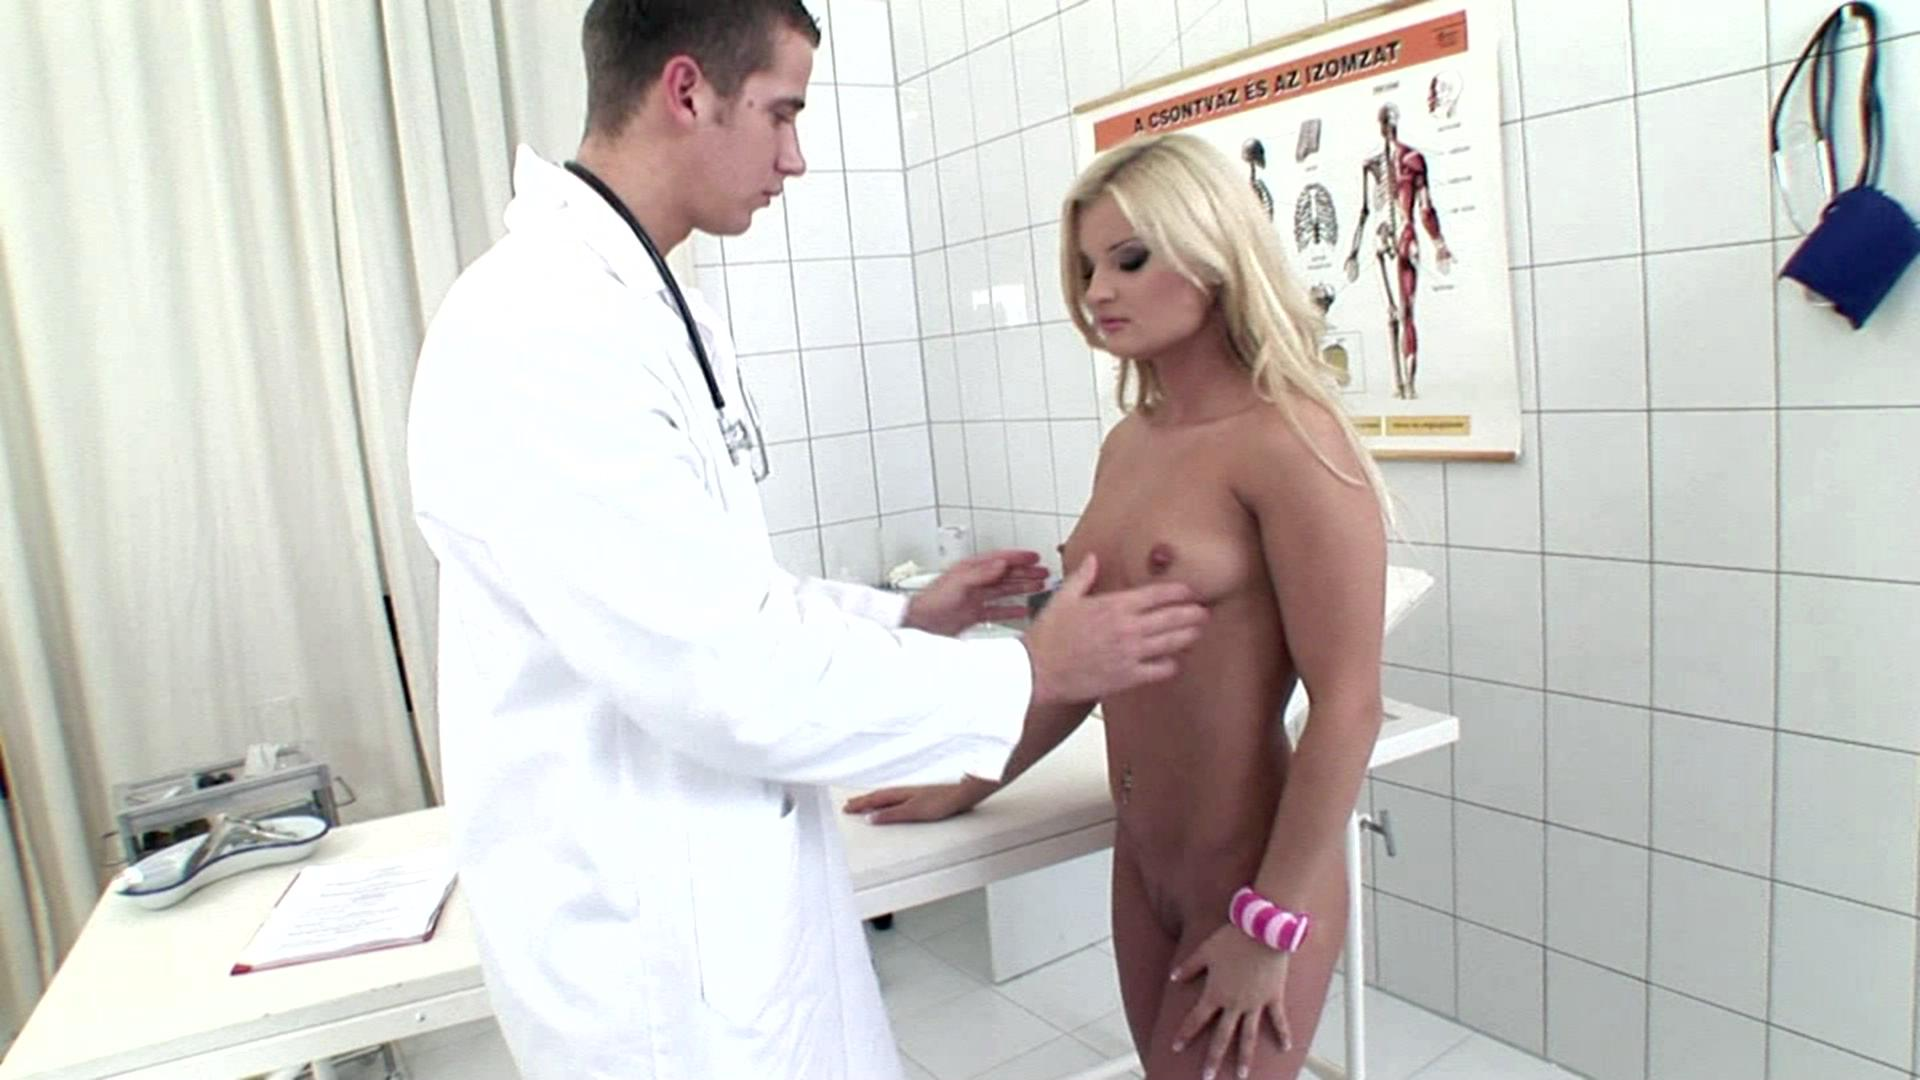 Deviant Doctors / These doctors give more than just an examination! After jamming in their medical tools, instruments and enemas, they complete the appointment with a deep dose of dick and a cum sedative!